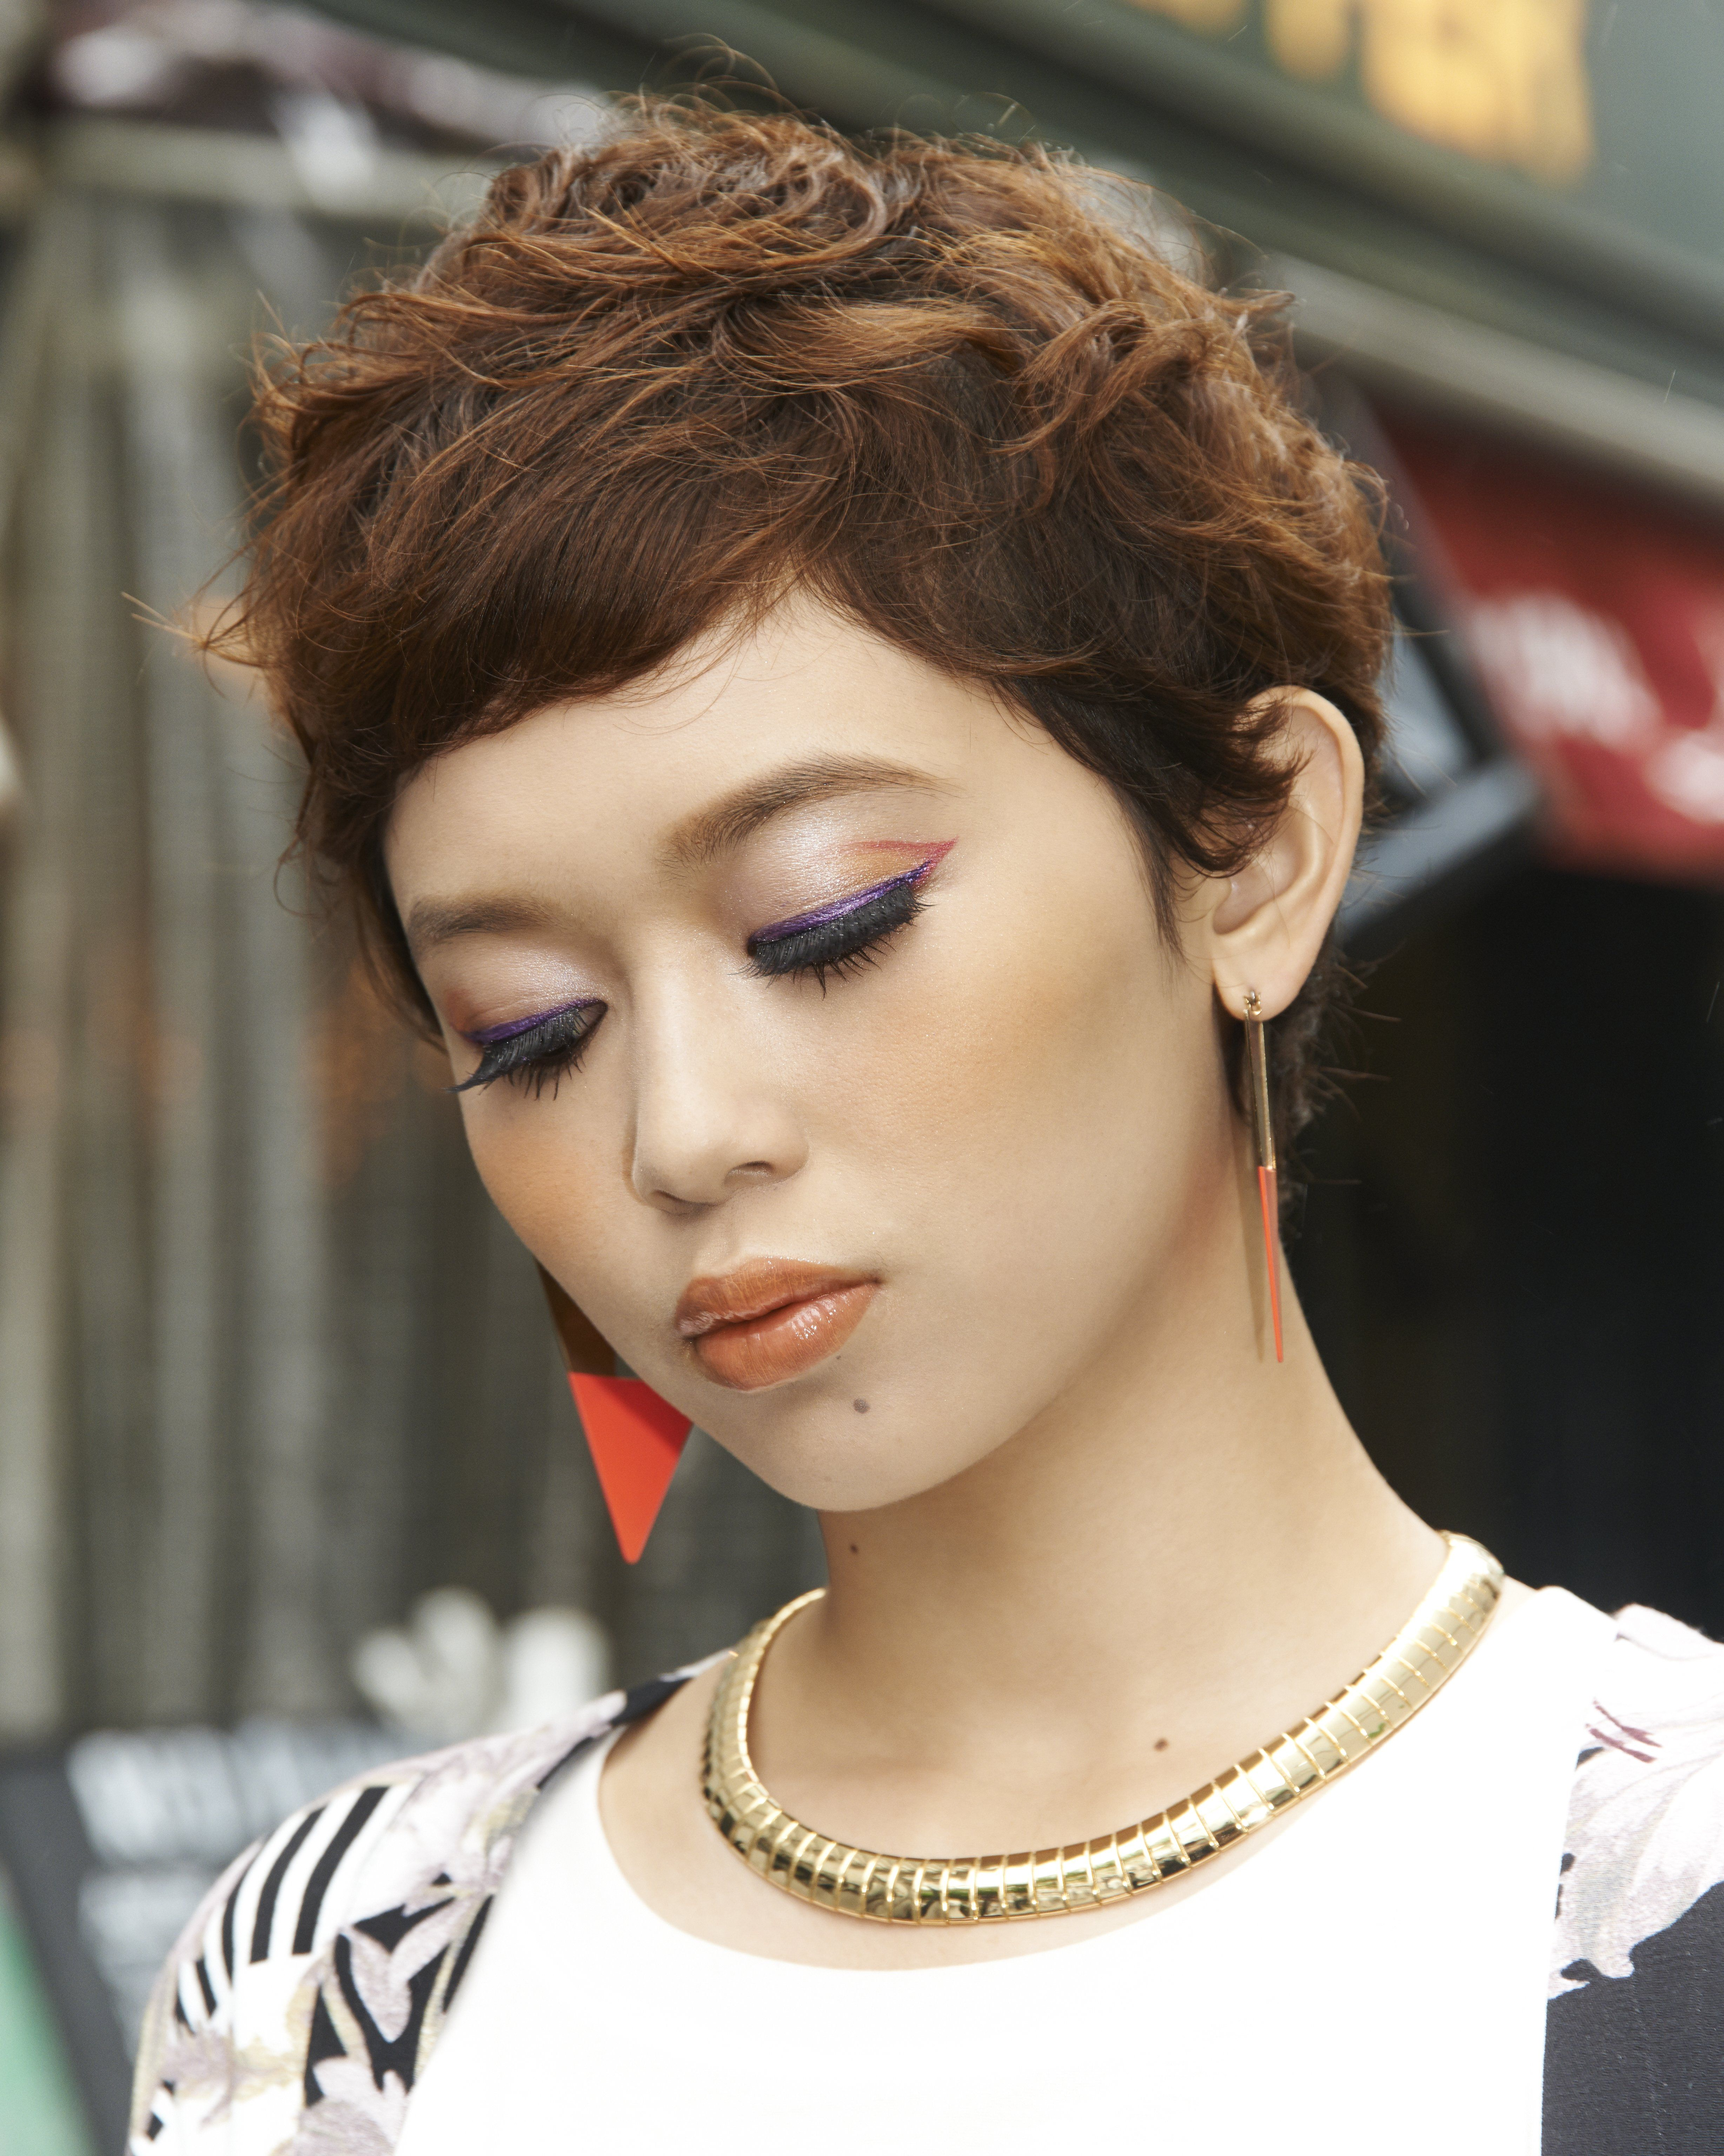 To create a playful effect on shu girl Miona, makeup